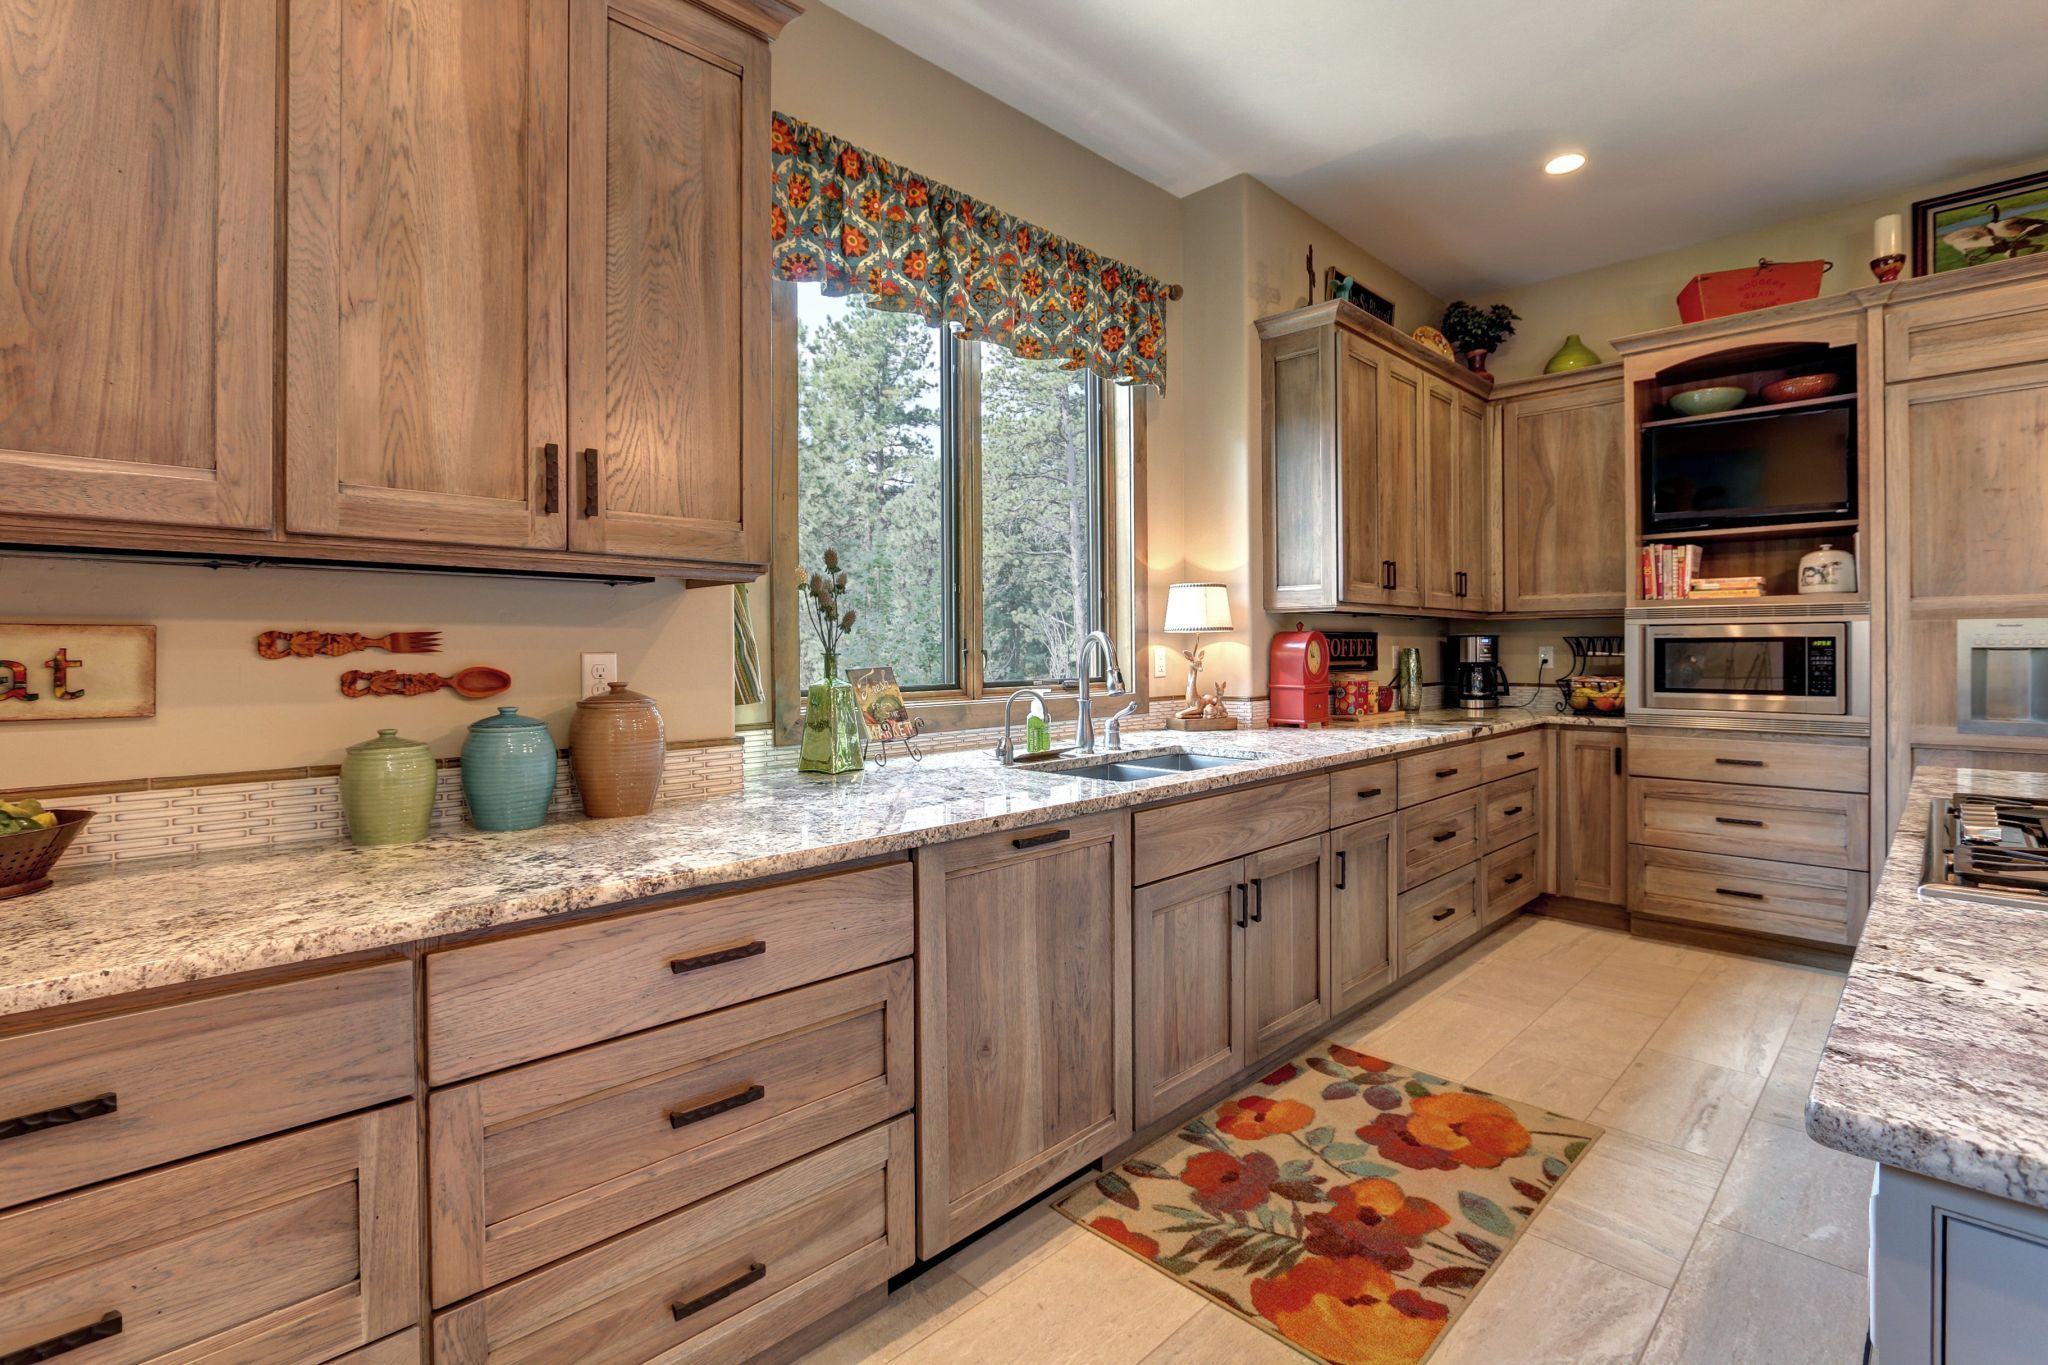 Rustic/Mountain | Hickory kitchen cabinets, Rustic kitchen ...